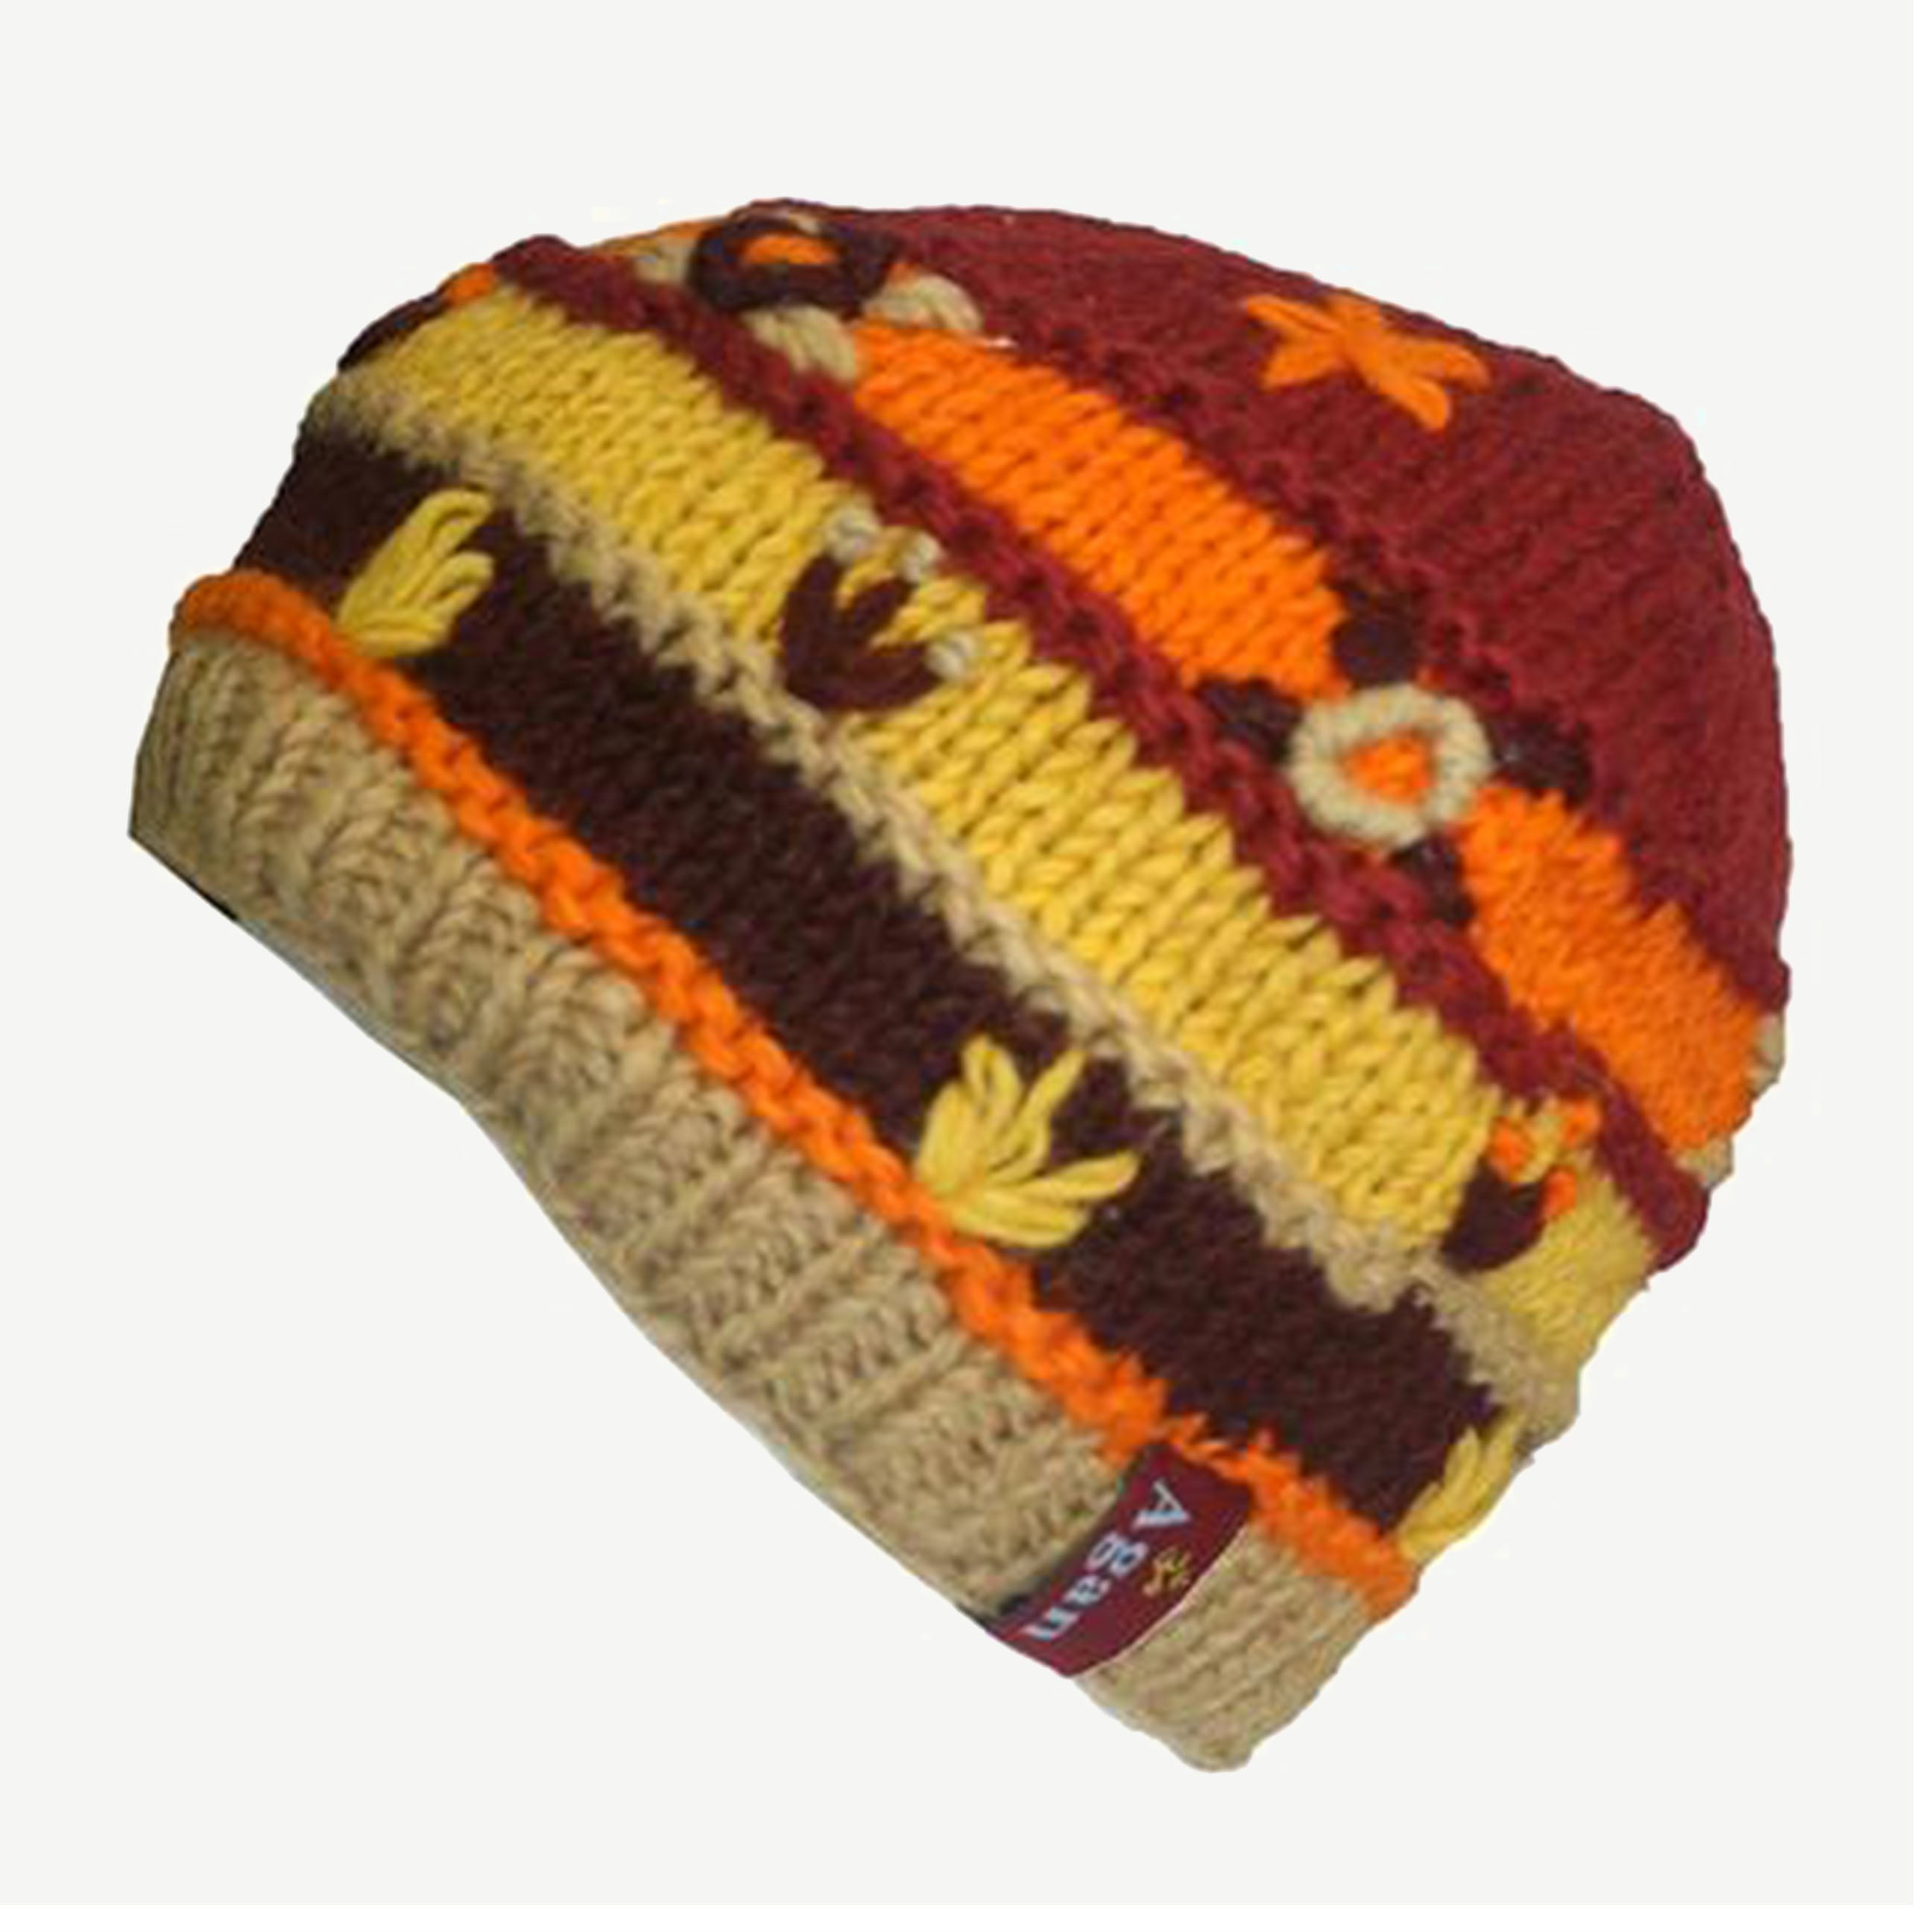 1418 Assorted Himalayan Knitted Lamb's Wool Fleece-Lined Hat OR Fingerless Mitten OR Folding Mitten